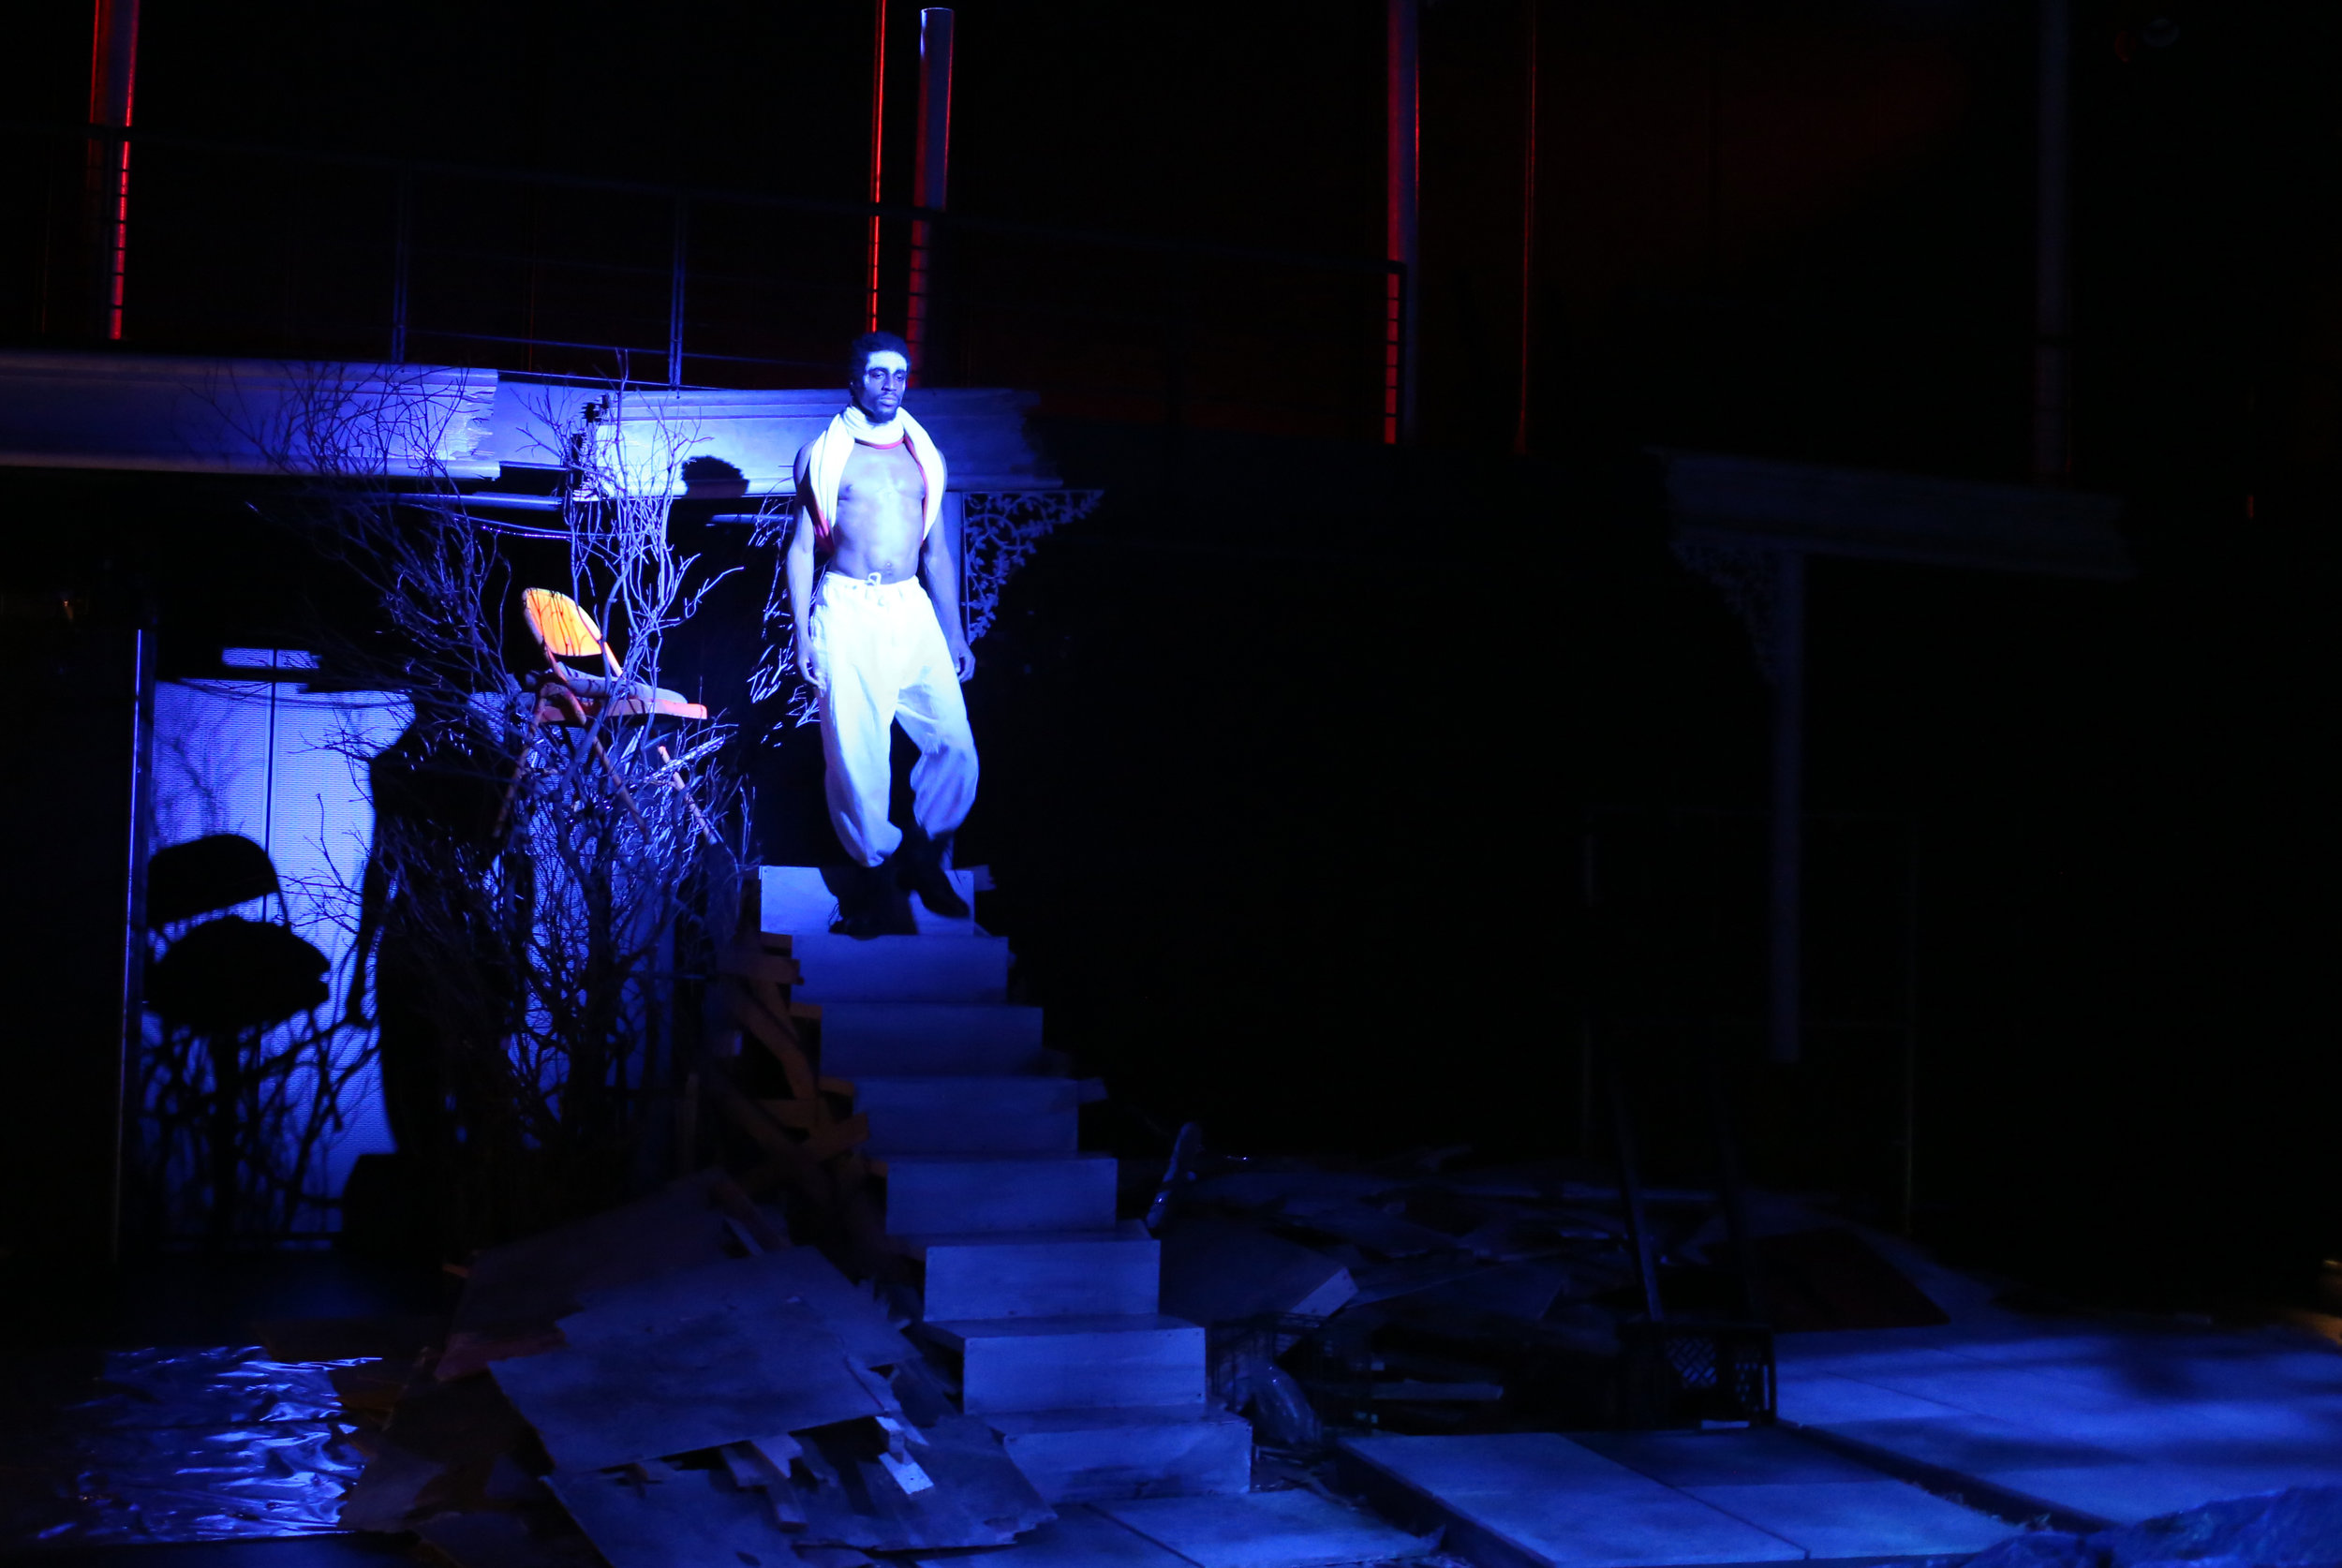 THE TEMPEST   by WIlliam Shakespeare    Dir. Njideka Agwuna | Lenfest Center for the Arts - Flexible Performance Space  Scenic Design by Andrew D. Moerdyk | Costume Design by Avery Reed | Lighting Design by Eric Norbury & Ethan Olsen  photography by Rob Strong